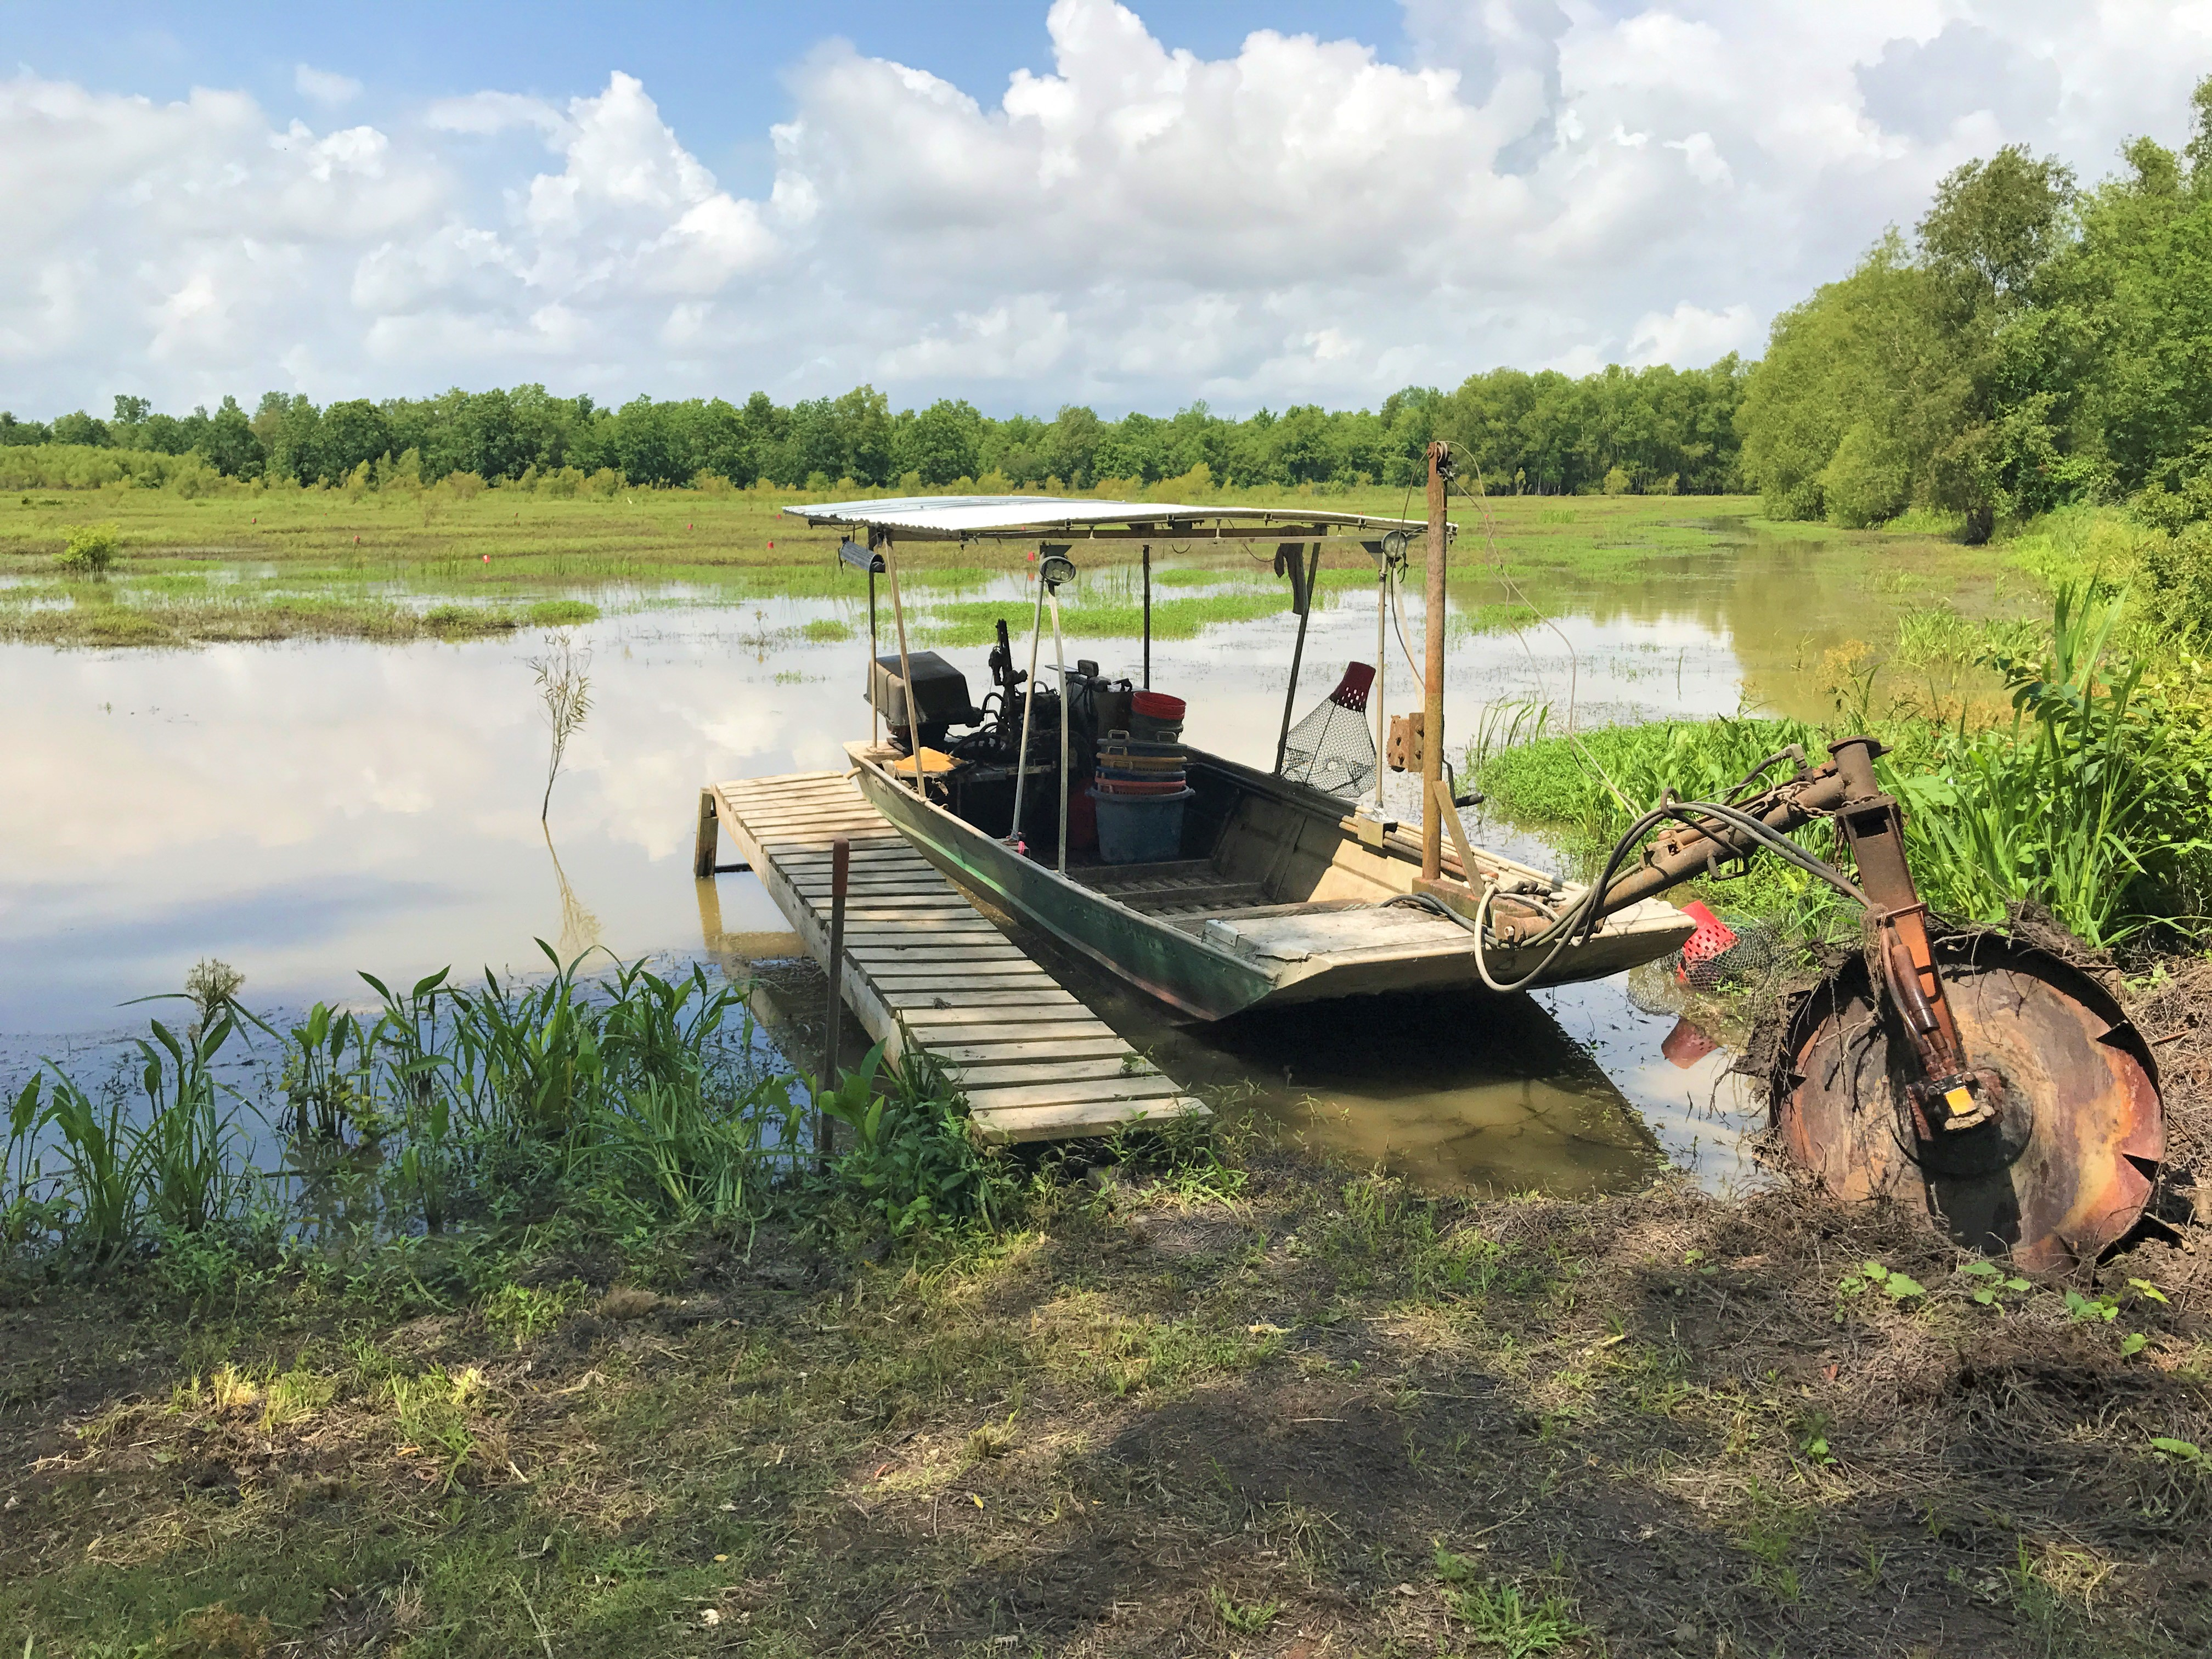 From Pond to Pot: Crawfishing in Louisiana